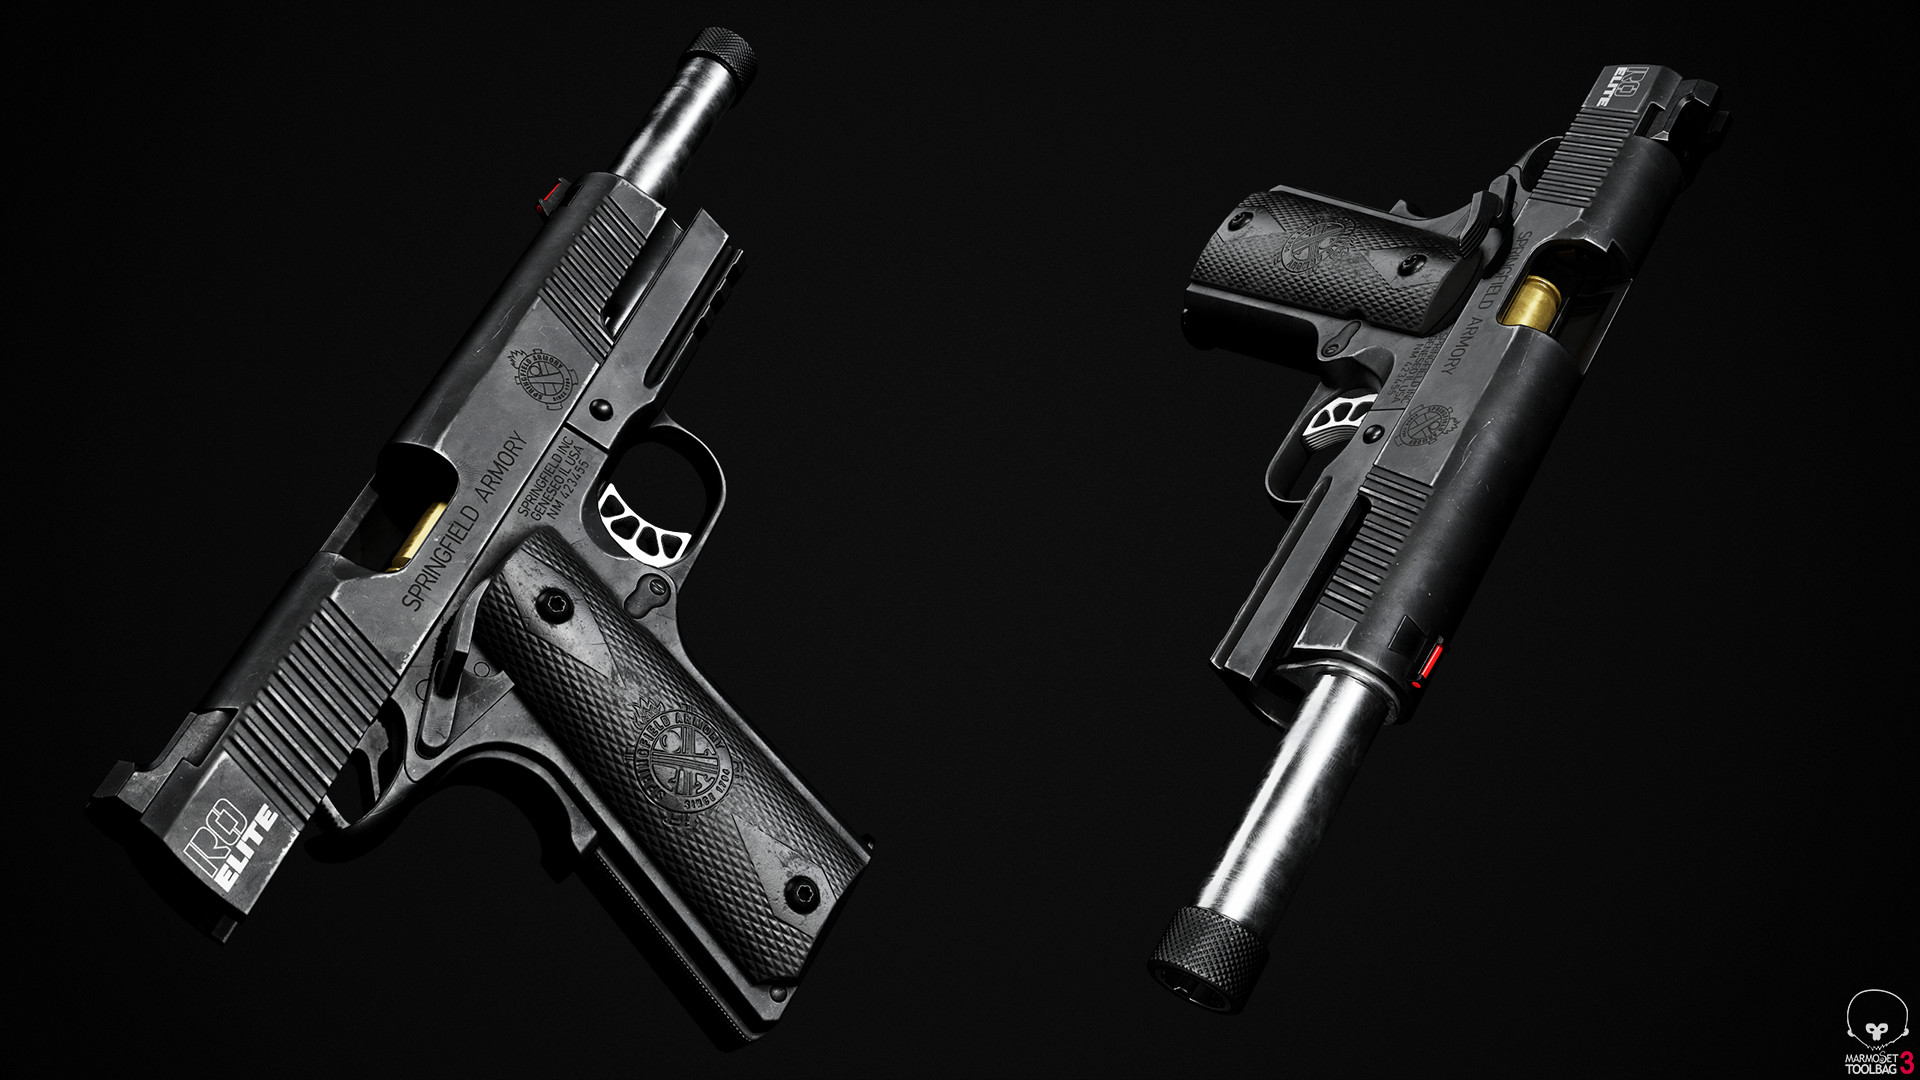 ArtStation - Springfield 1911 Range Officer Elite Operator ...